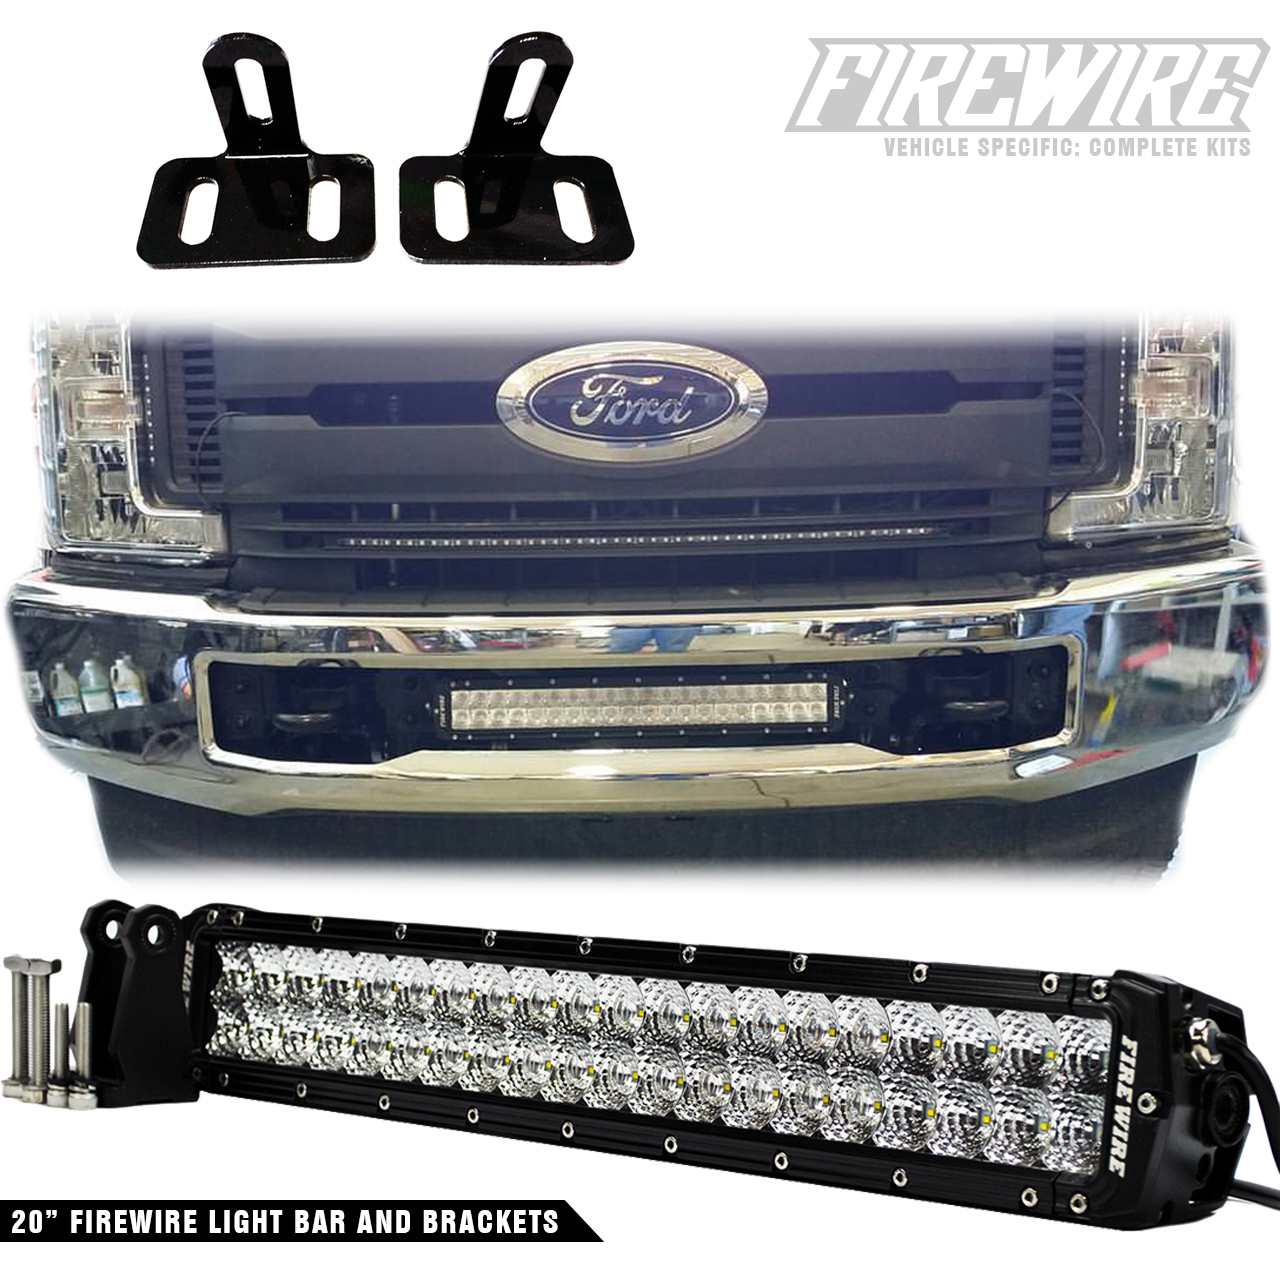 2017 ford super duty bumper light bar kit firewire leds firewire led would like to introduce our newest product the 2017 ford super duty bumper light bar kit this light bar kit includes a 20 inch light bar and mozeypictures Choice Image